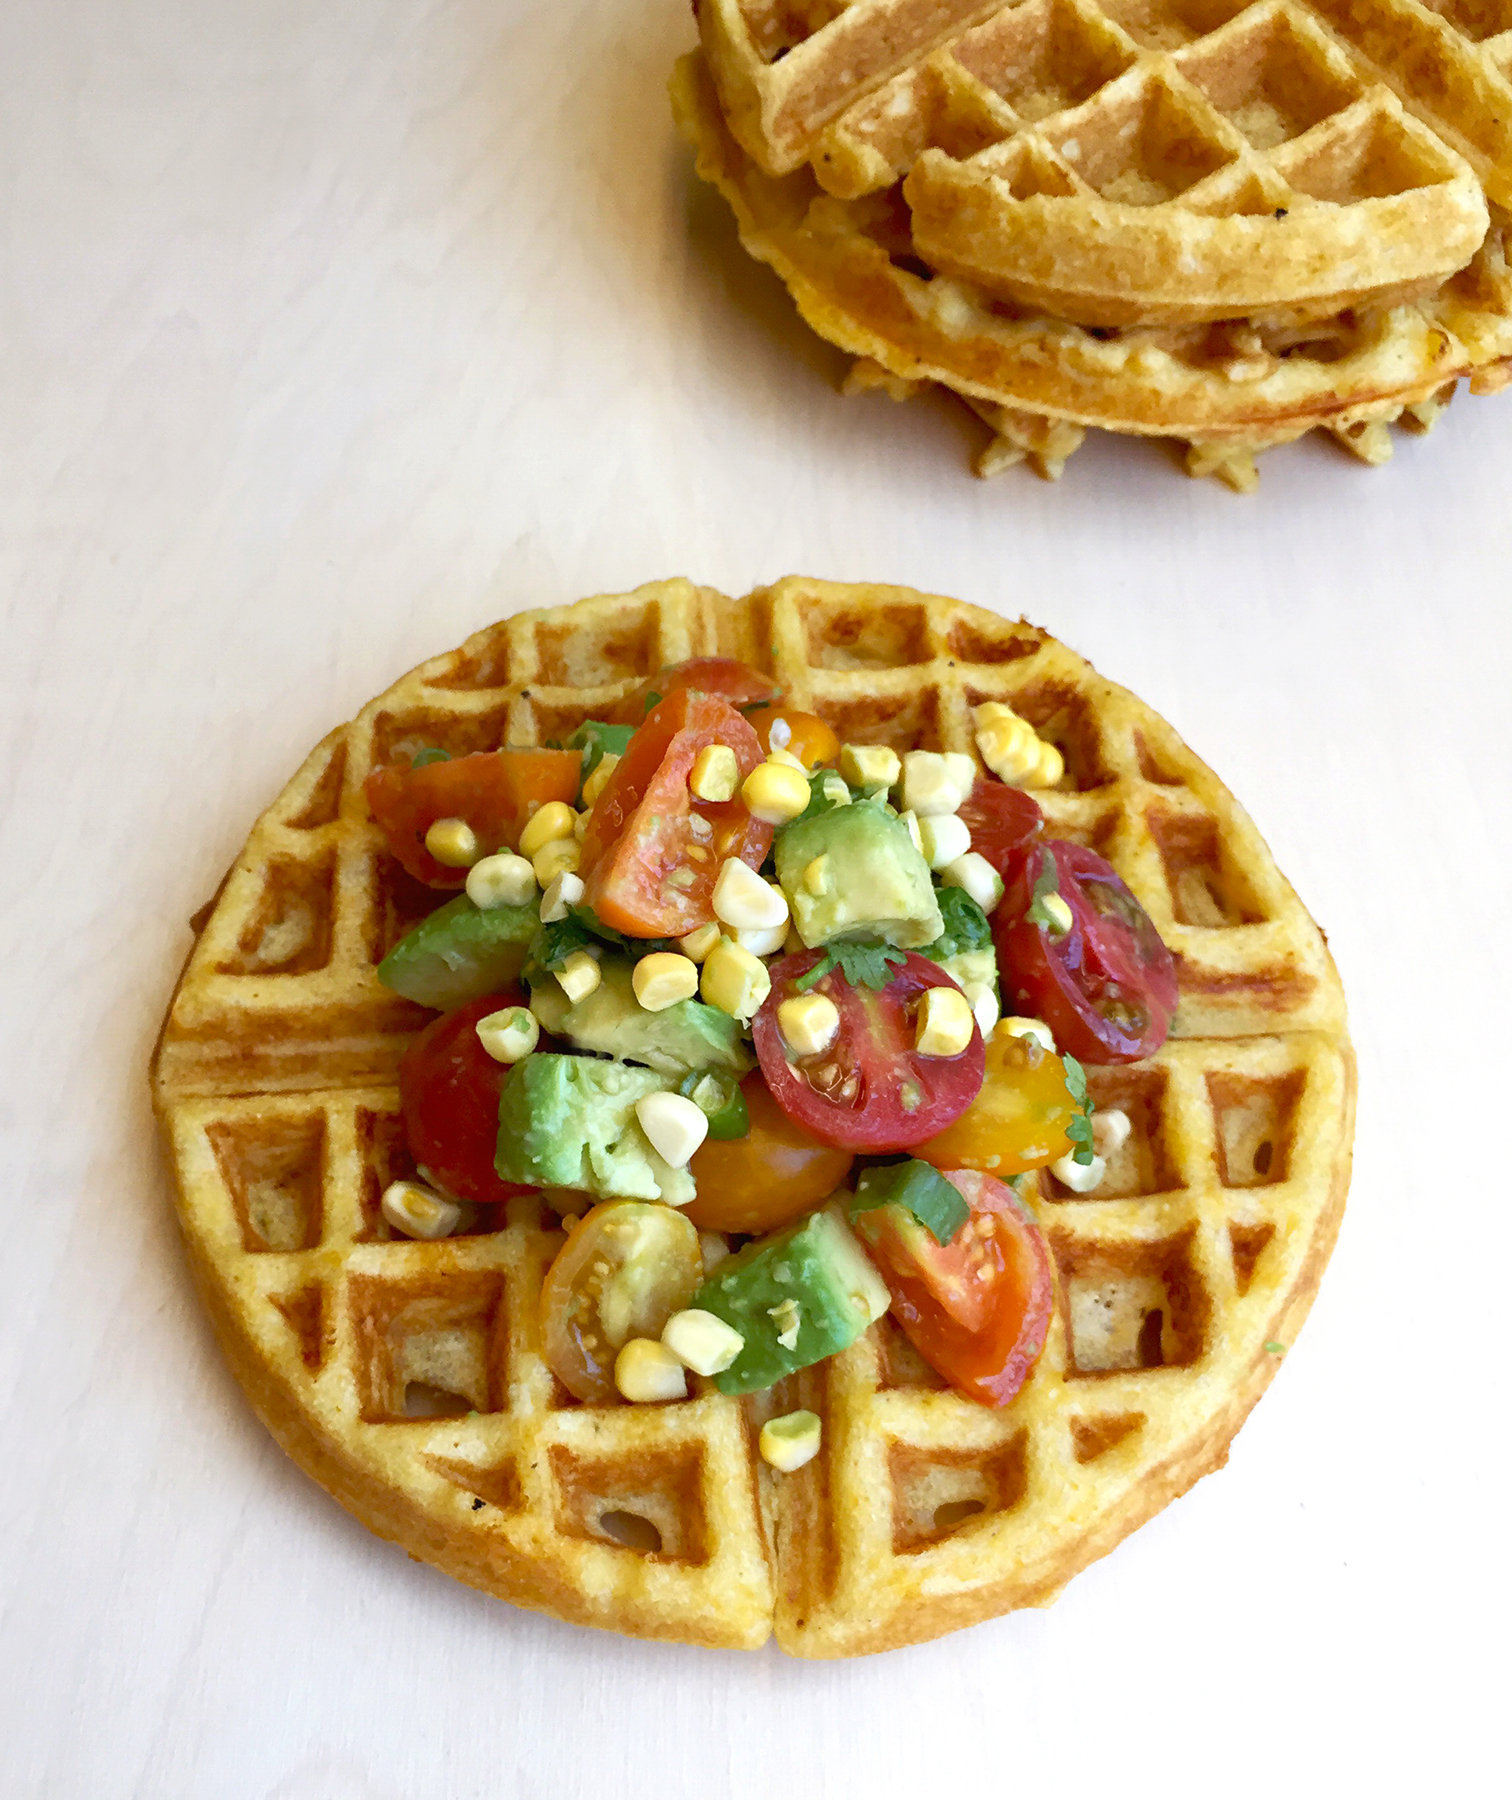 Savory Cornmeal Waffles With Tomato-Avocado Salsa | Real Simple